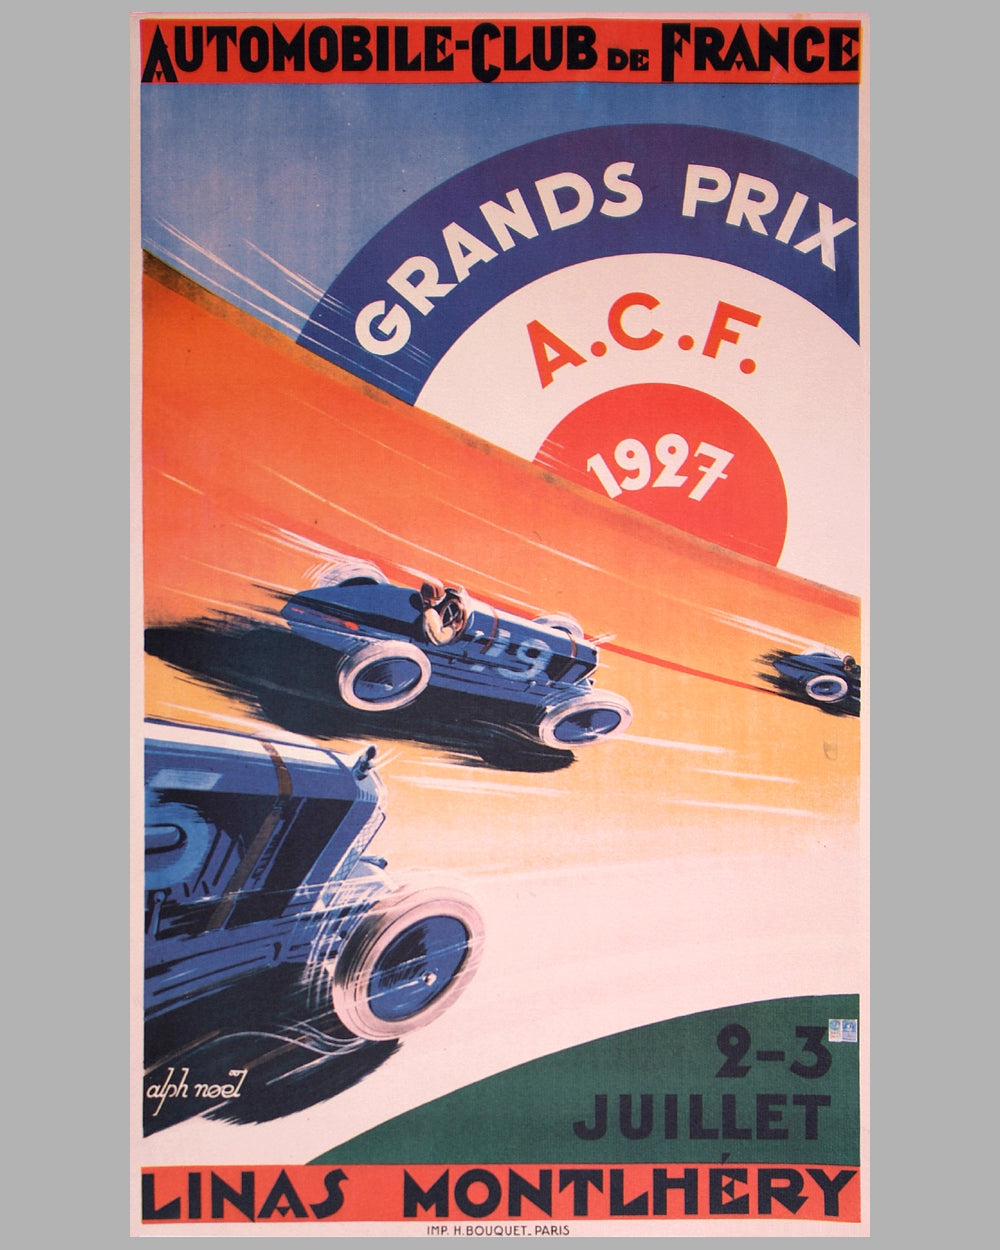 French Grand Prix at Montlhery 1927 official event poster by Alph Noel